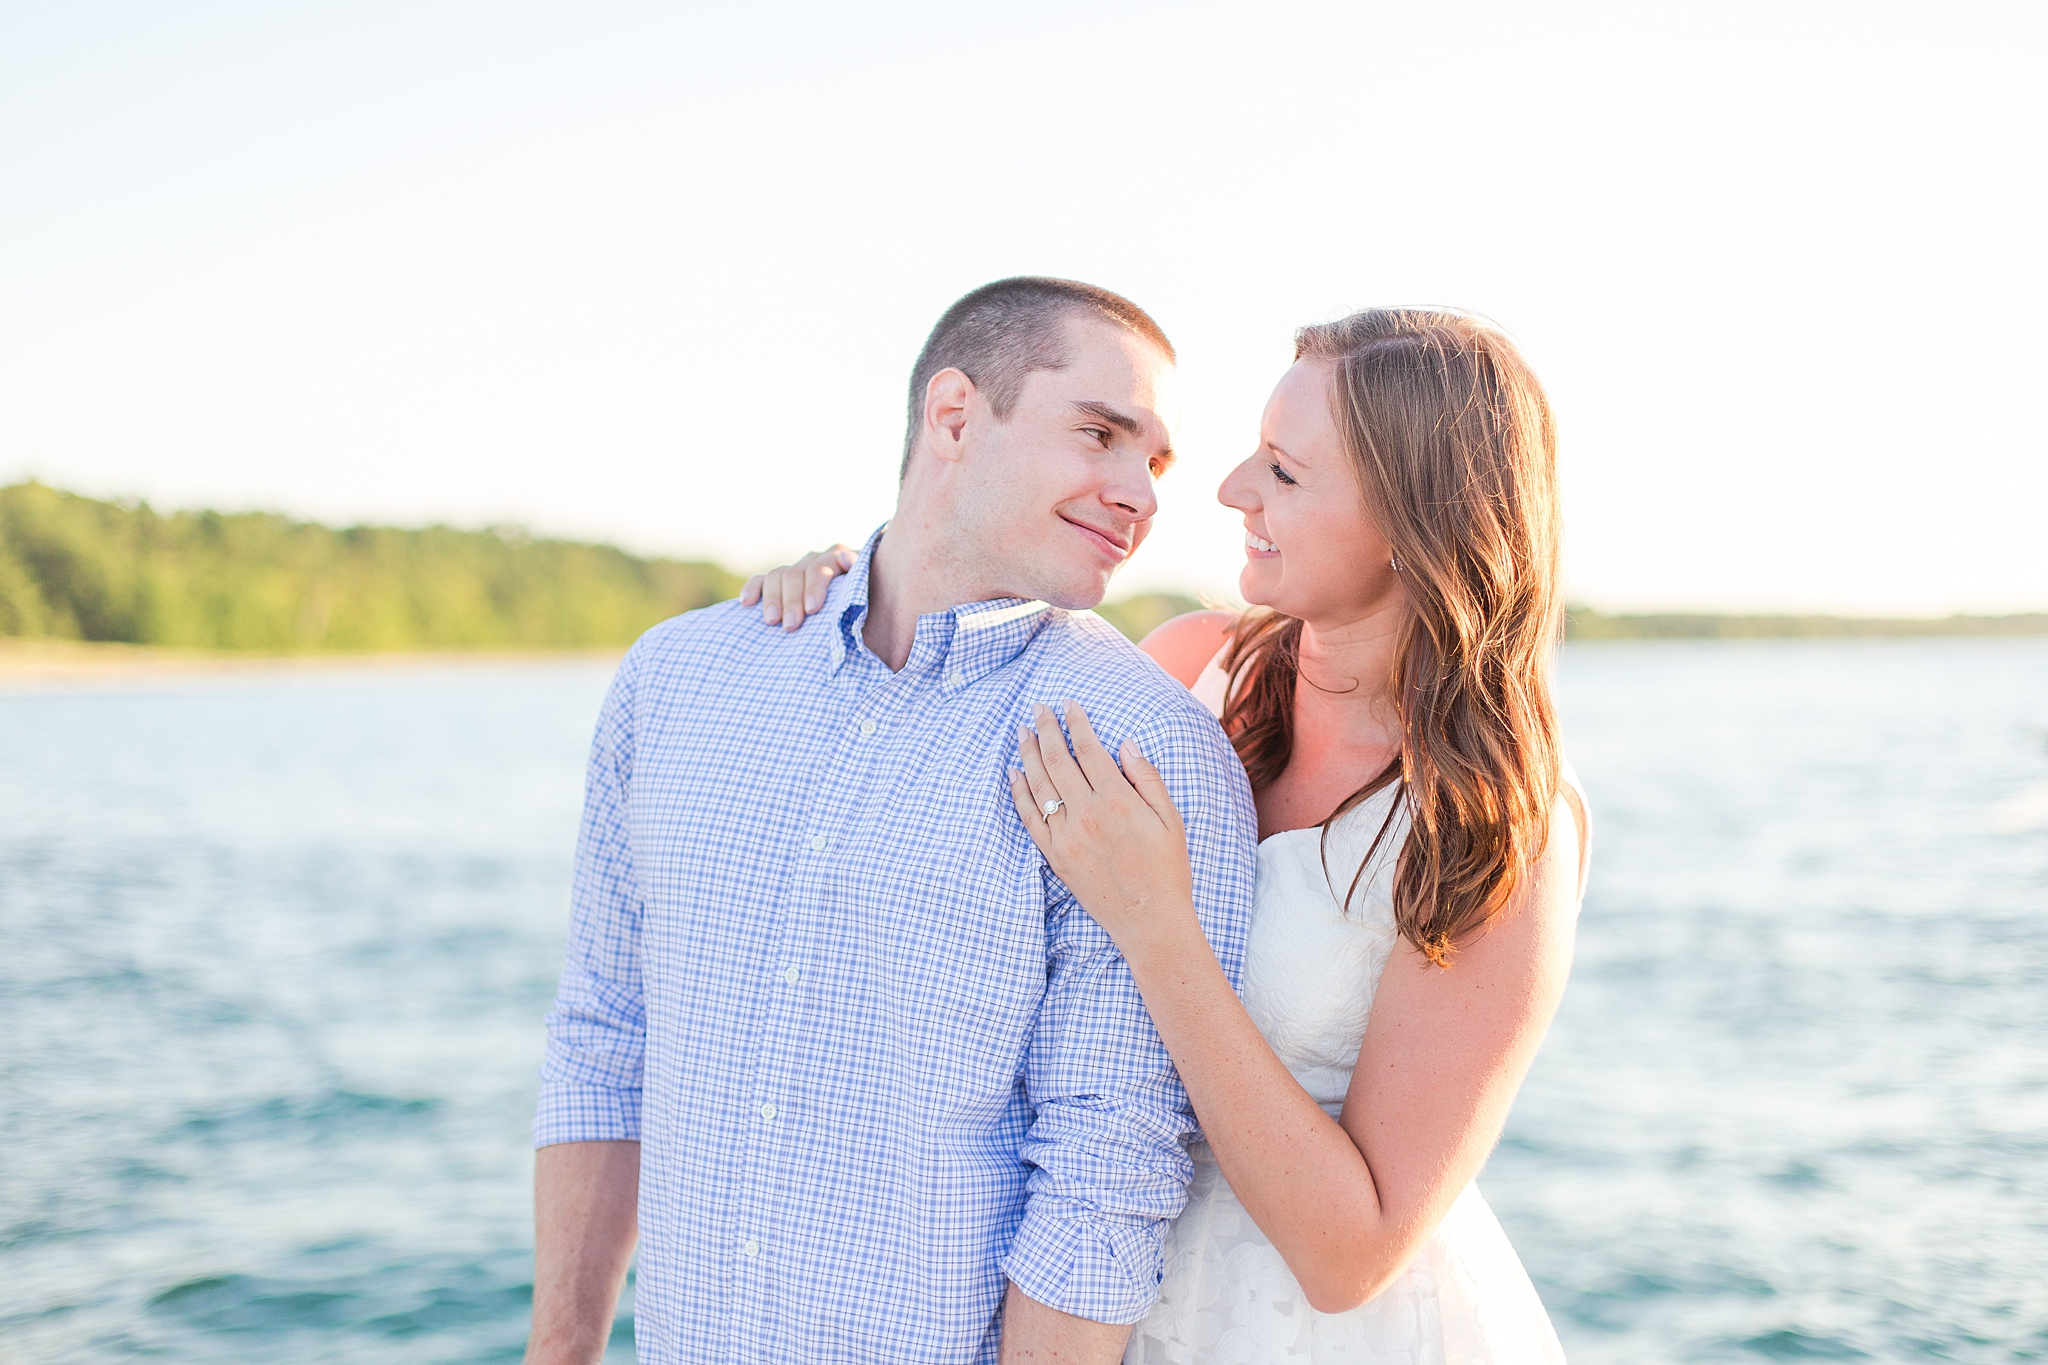 waterfront-lighthouse-engagement-photography-in-charlevoix-mi-by-courtney-carolyn-photography_0010.jpg